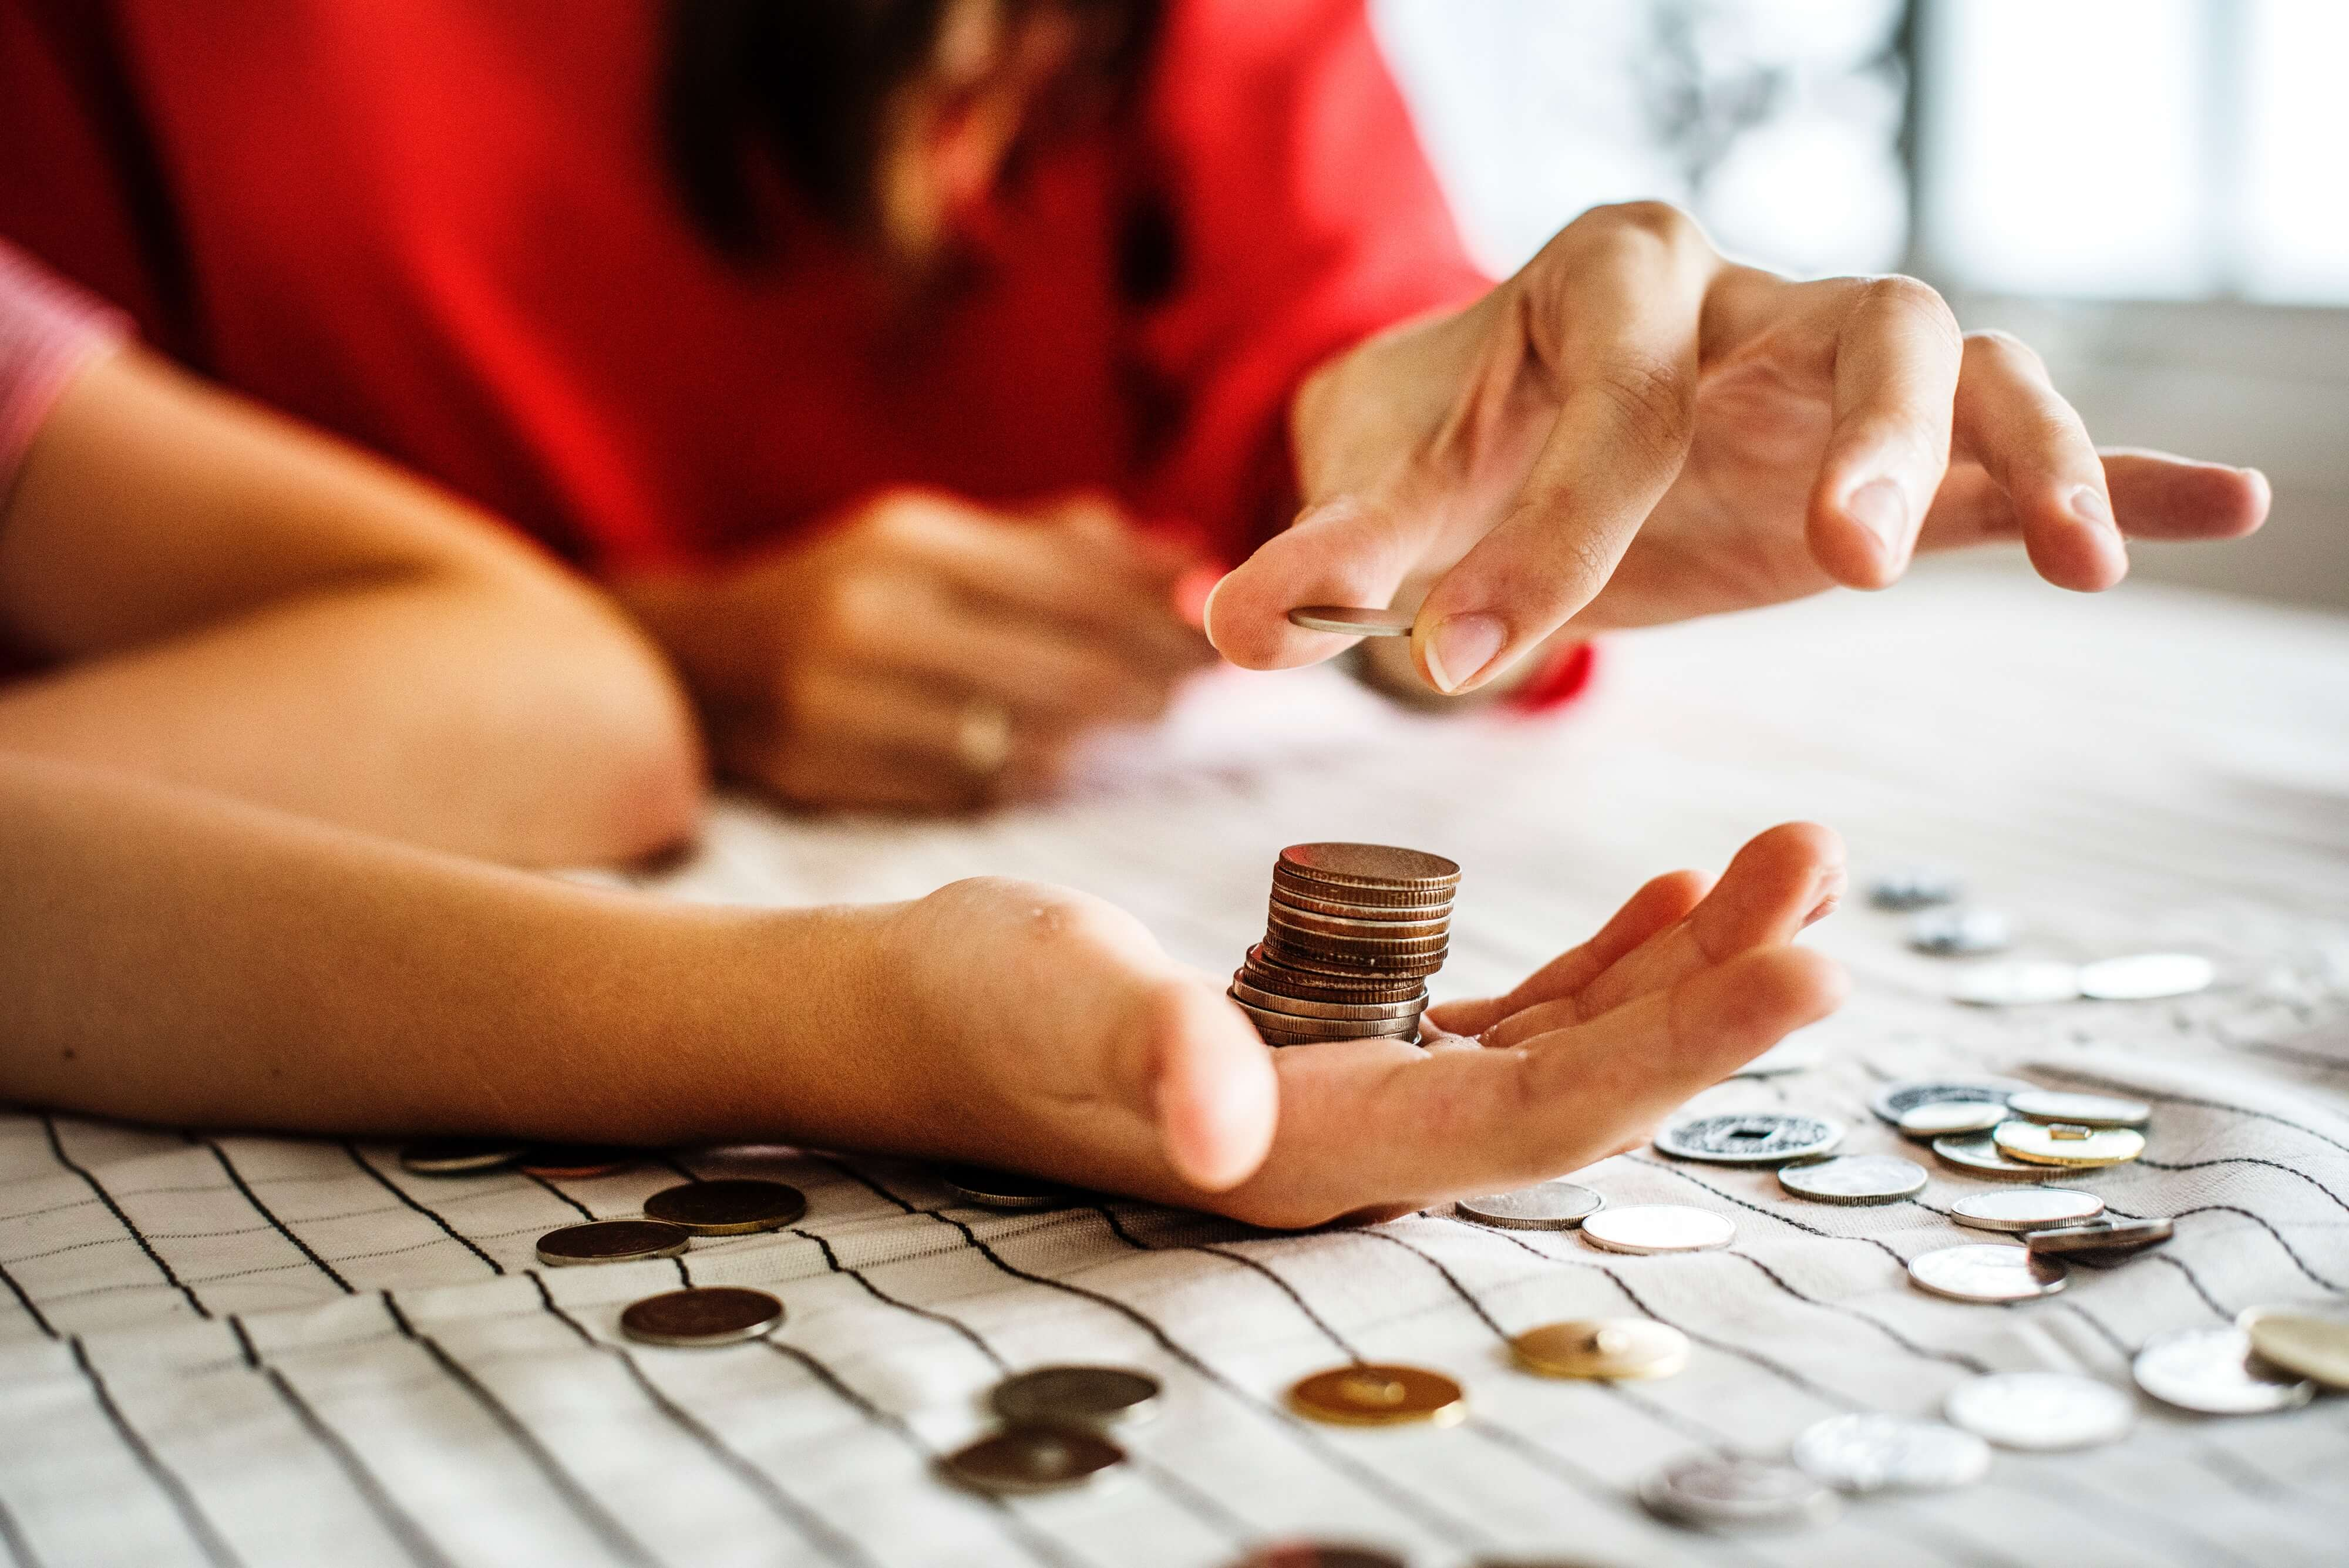 5 money saving challenges you can try this week